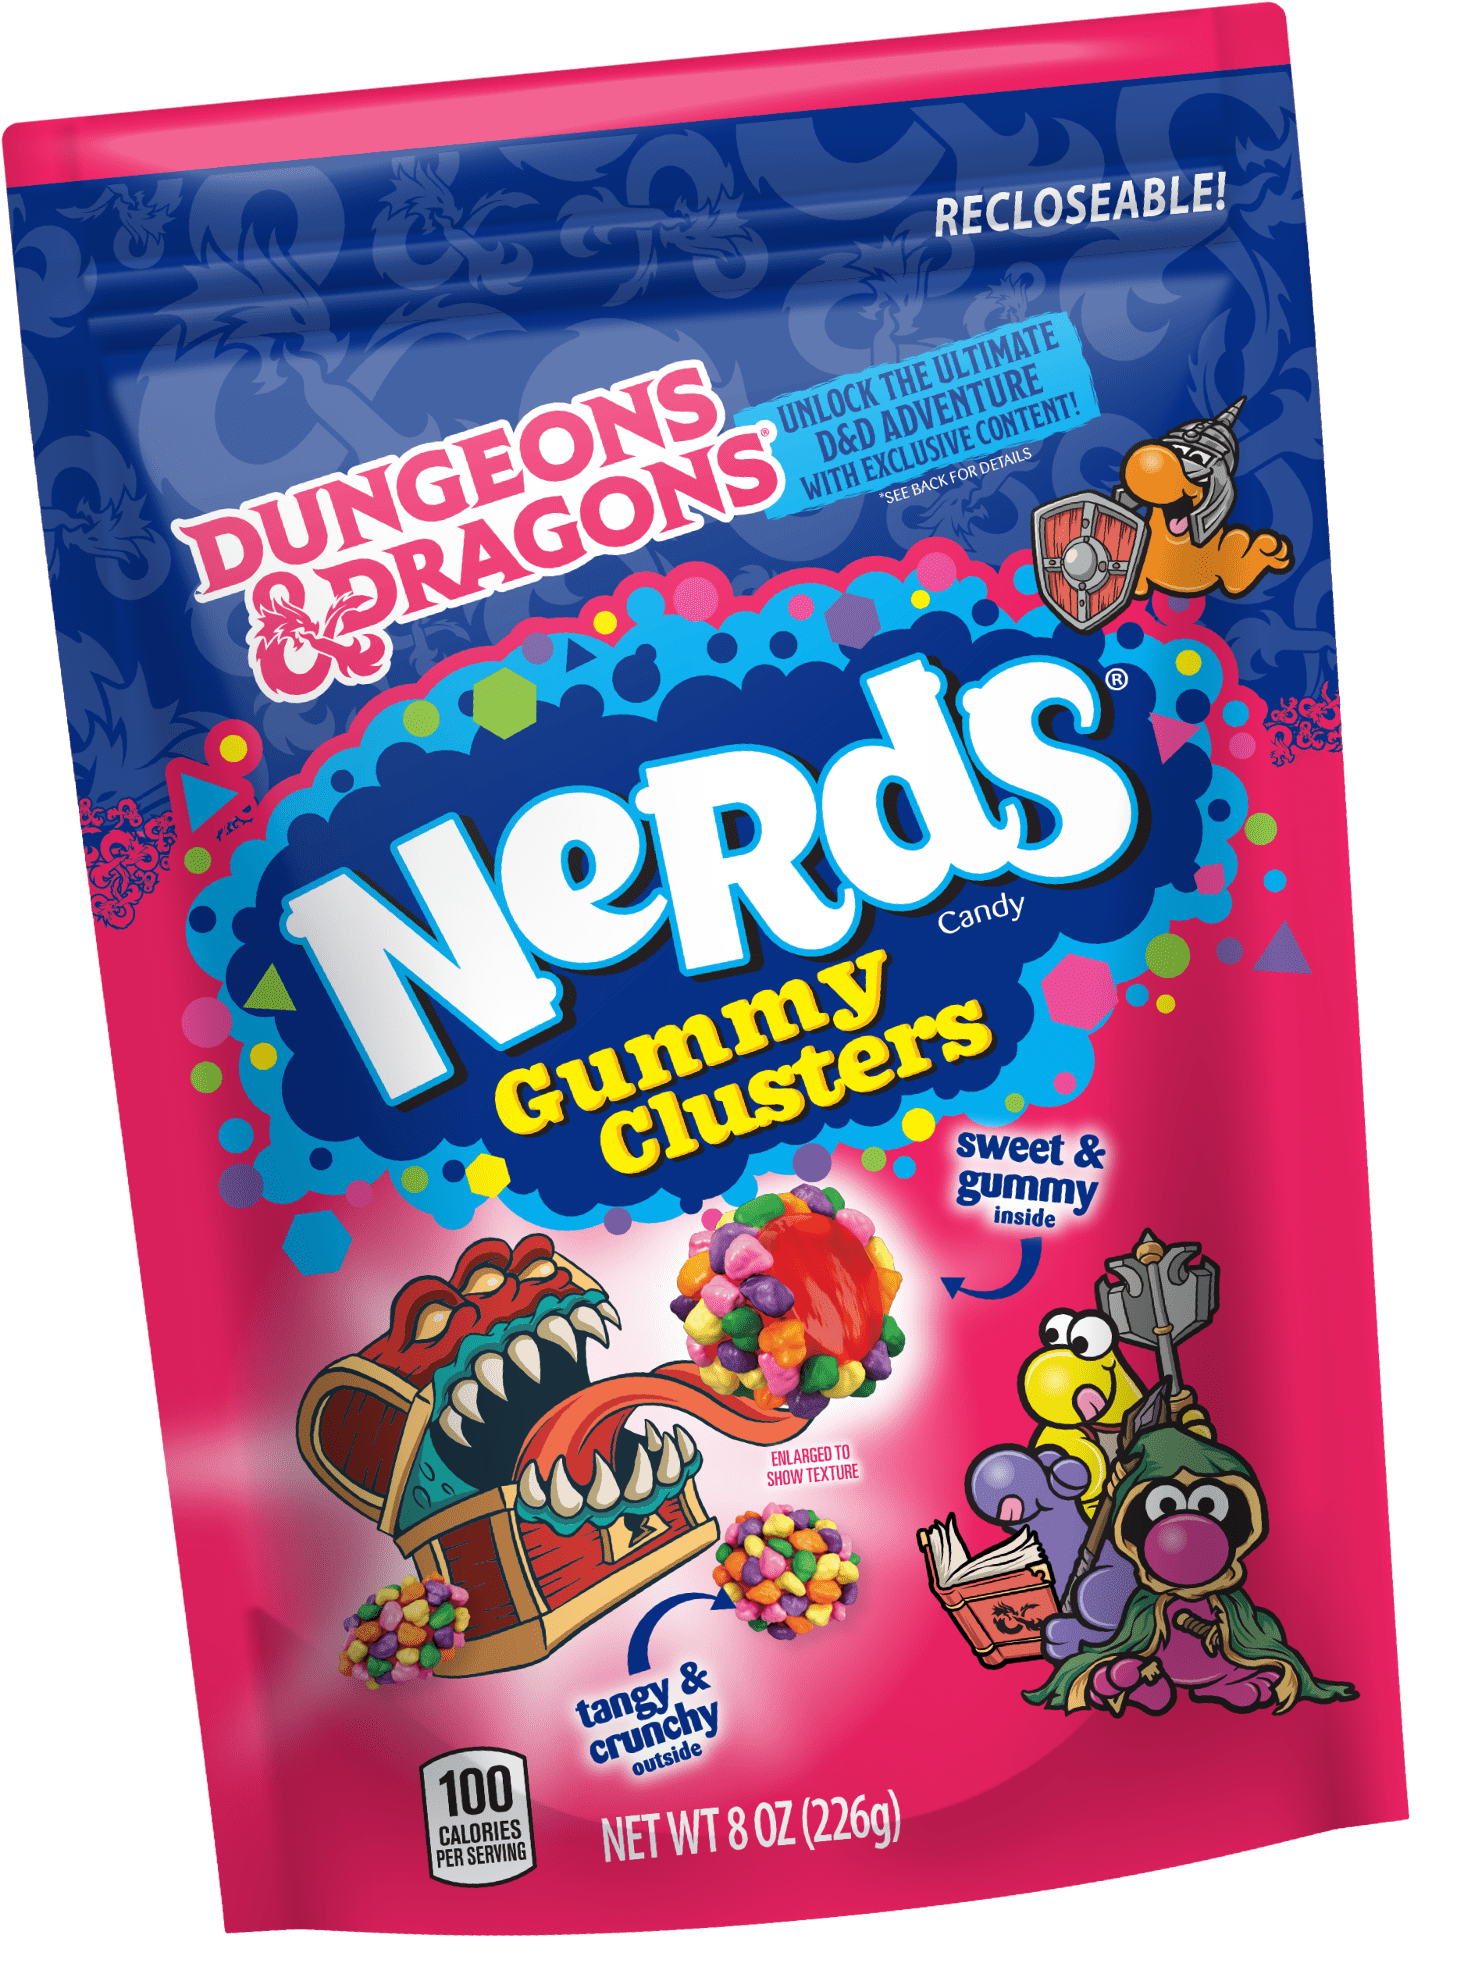 Nerds Gummy clusters with D&D branding